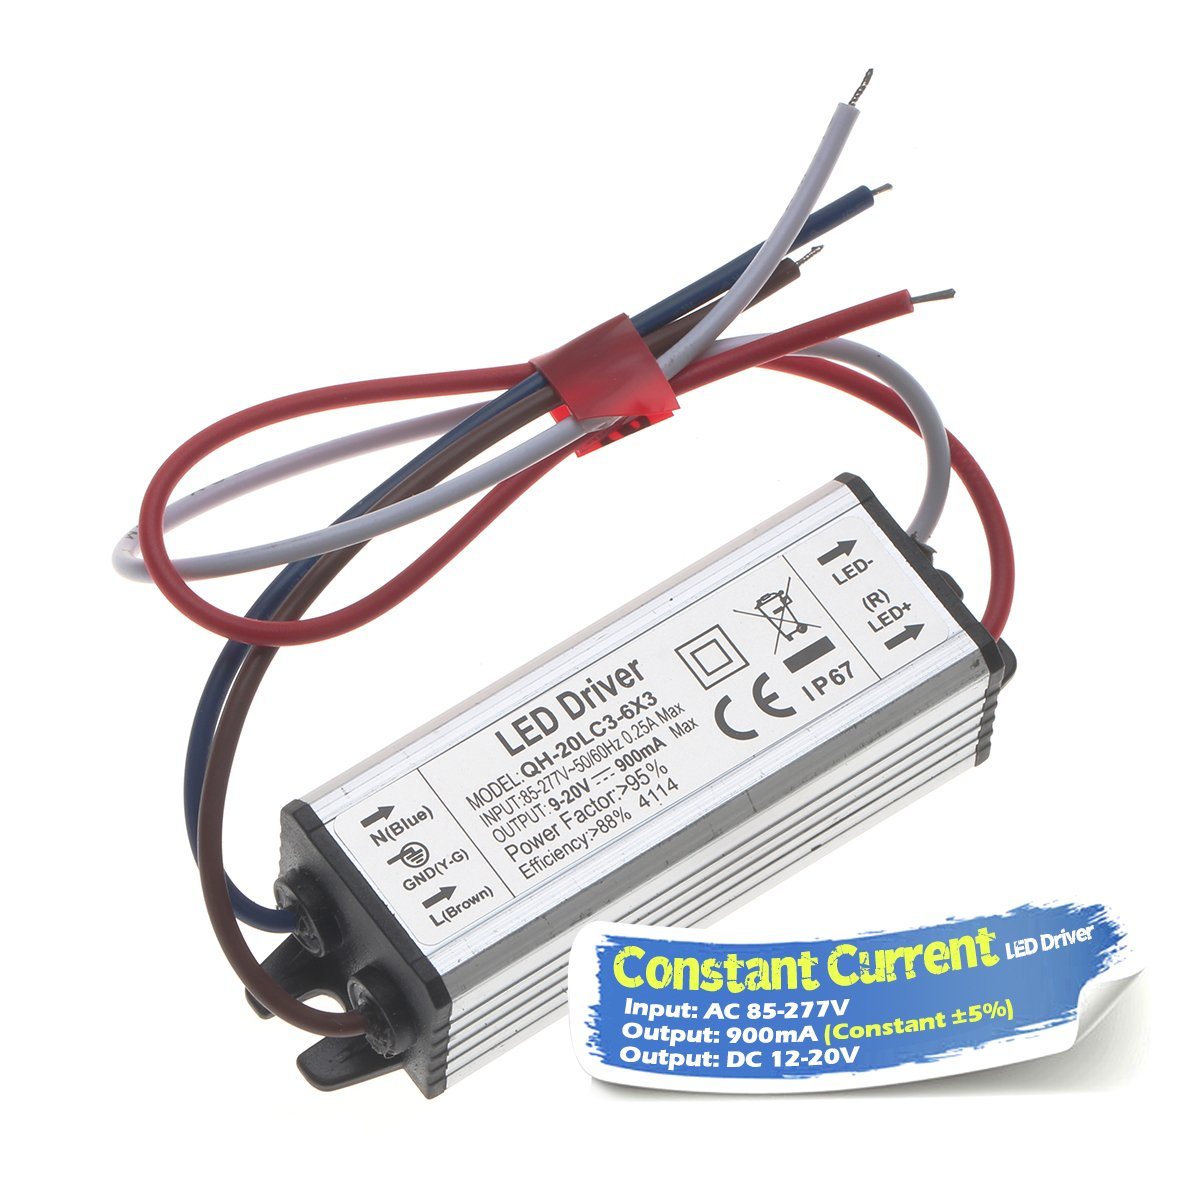 Chanzon Led Driver 900ma Constant Current Output 12v 20v Input 85 Drives Two 3 Watt Ledselectronics Project Circuts 277v Ac Dc 4 6 X3 12w 15w 18w 20w Ip67 Waterproof Power Supply 900 Ma Lighting